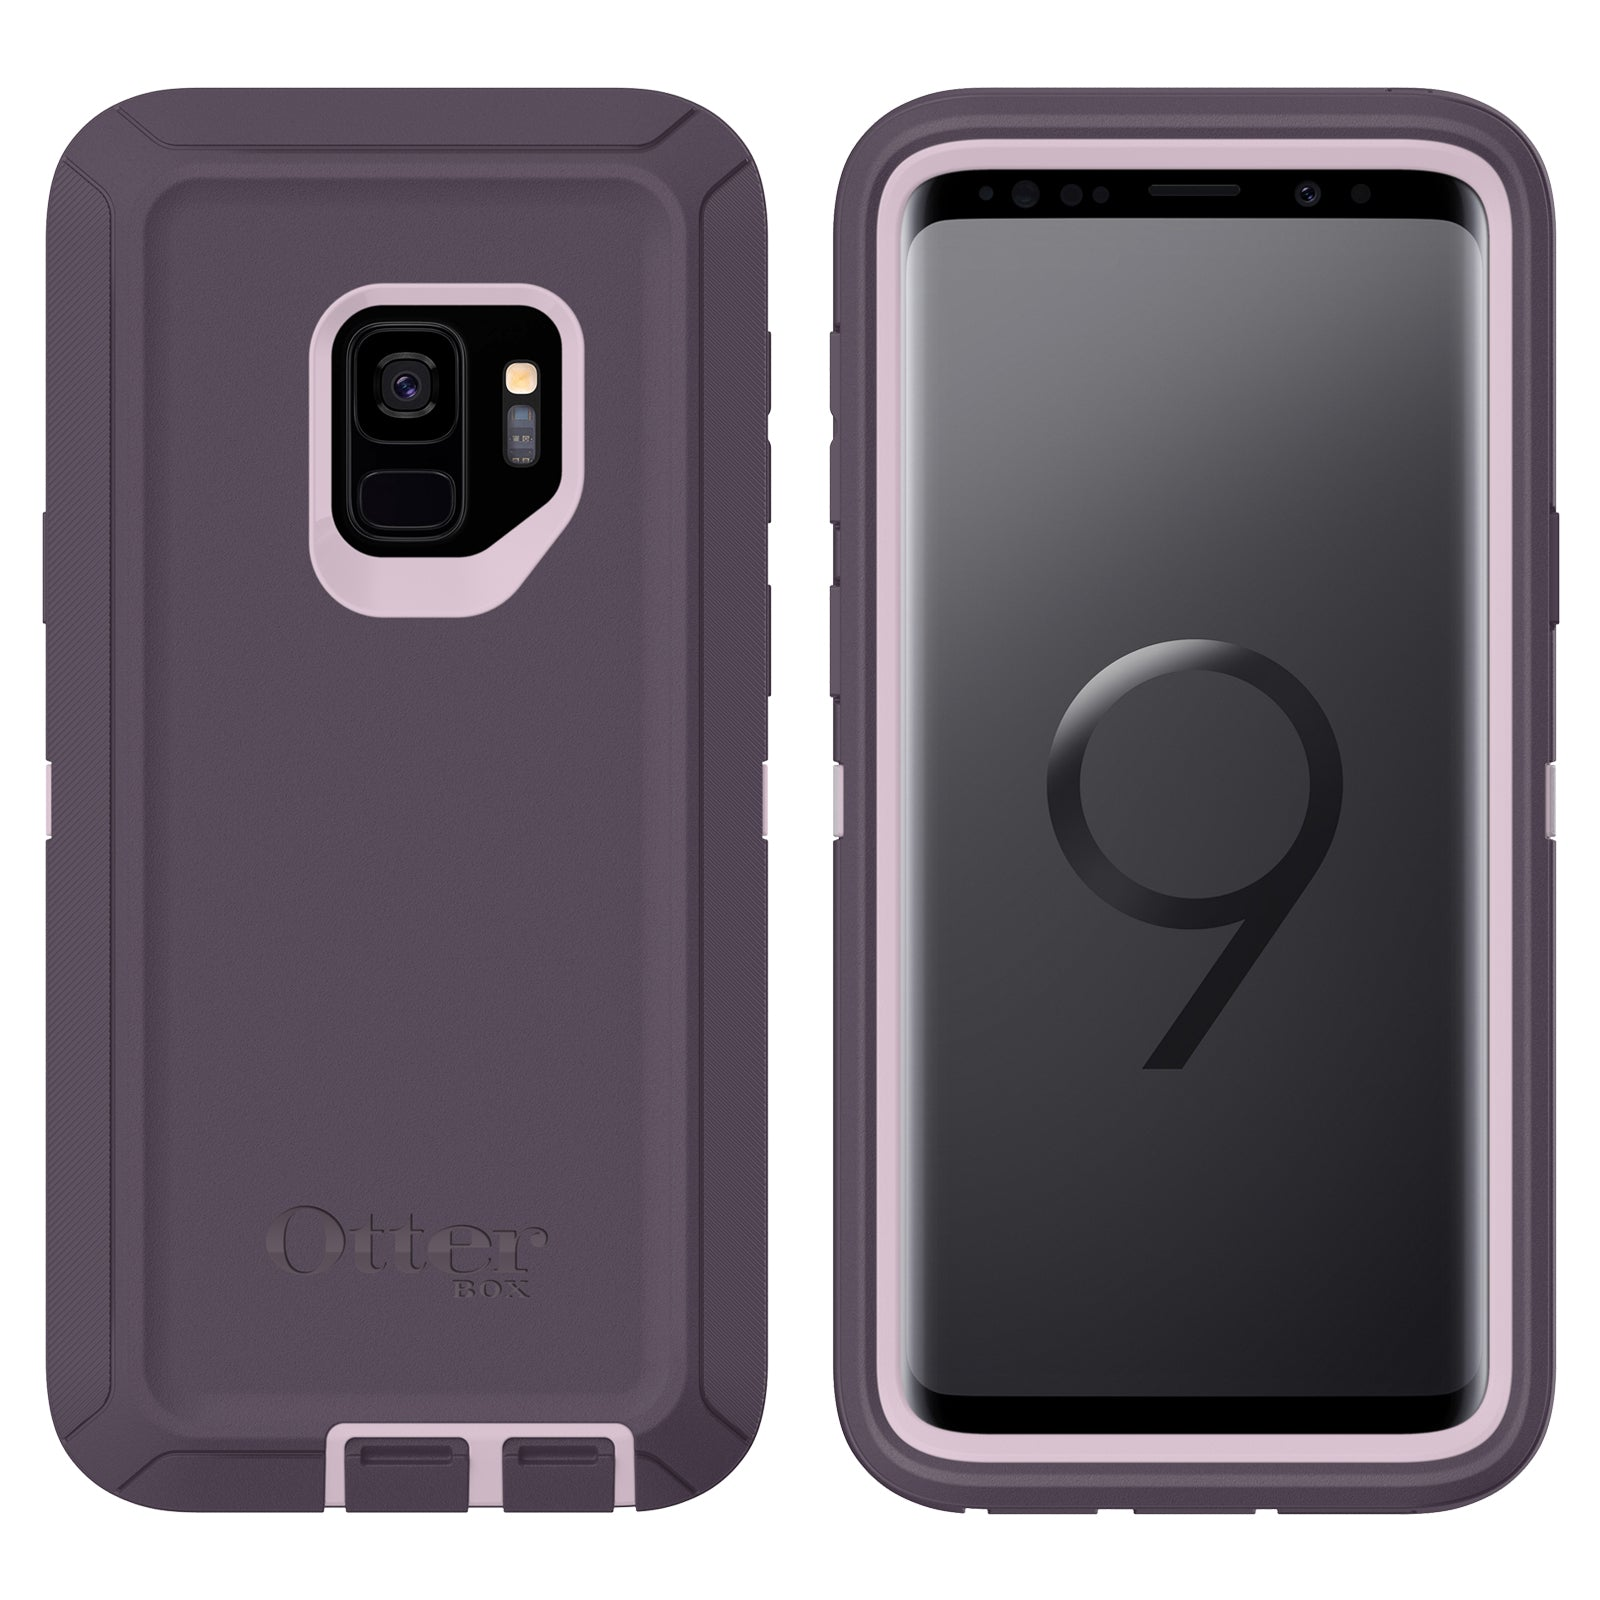 online store 3068c 5aa25 Otterbox Defender Case For Samsung Galaxy S9 - Purple Nebula